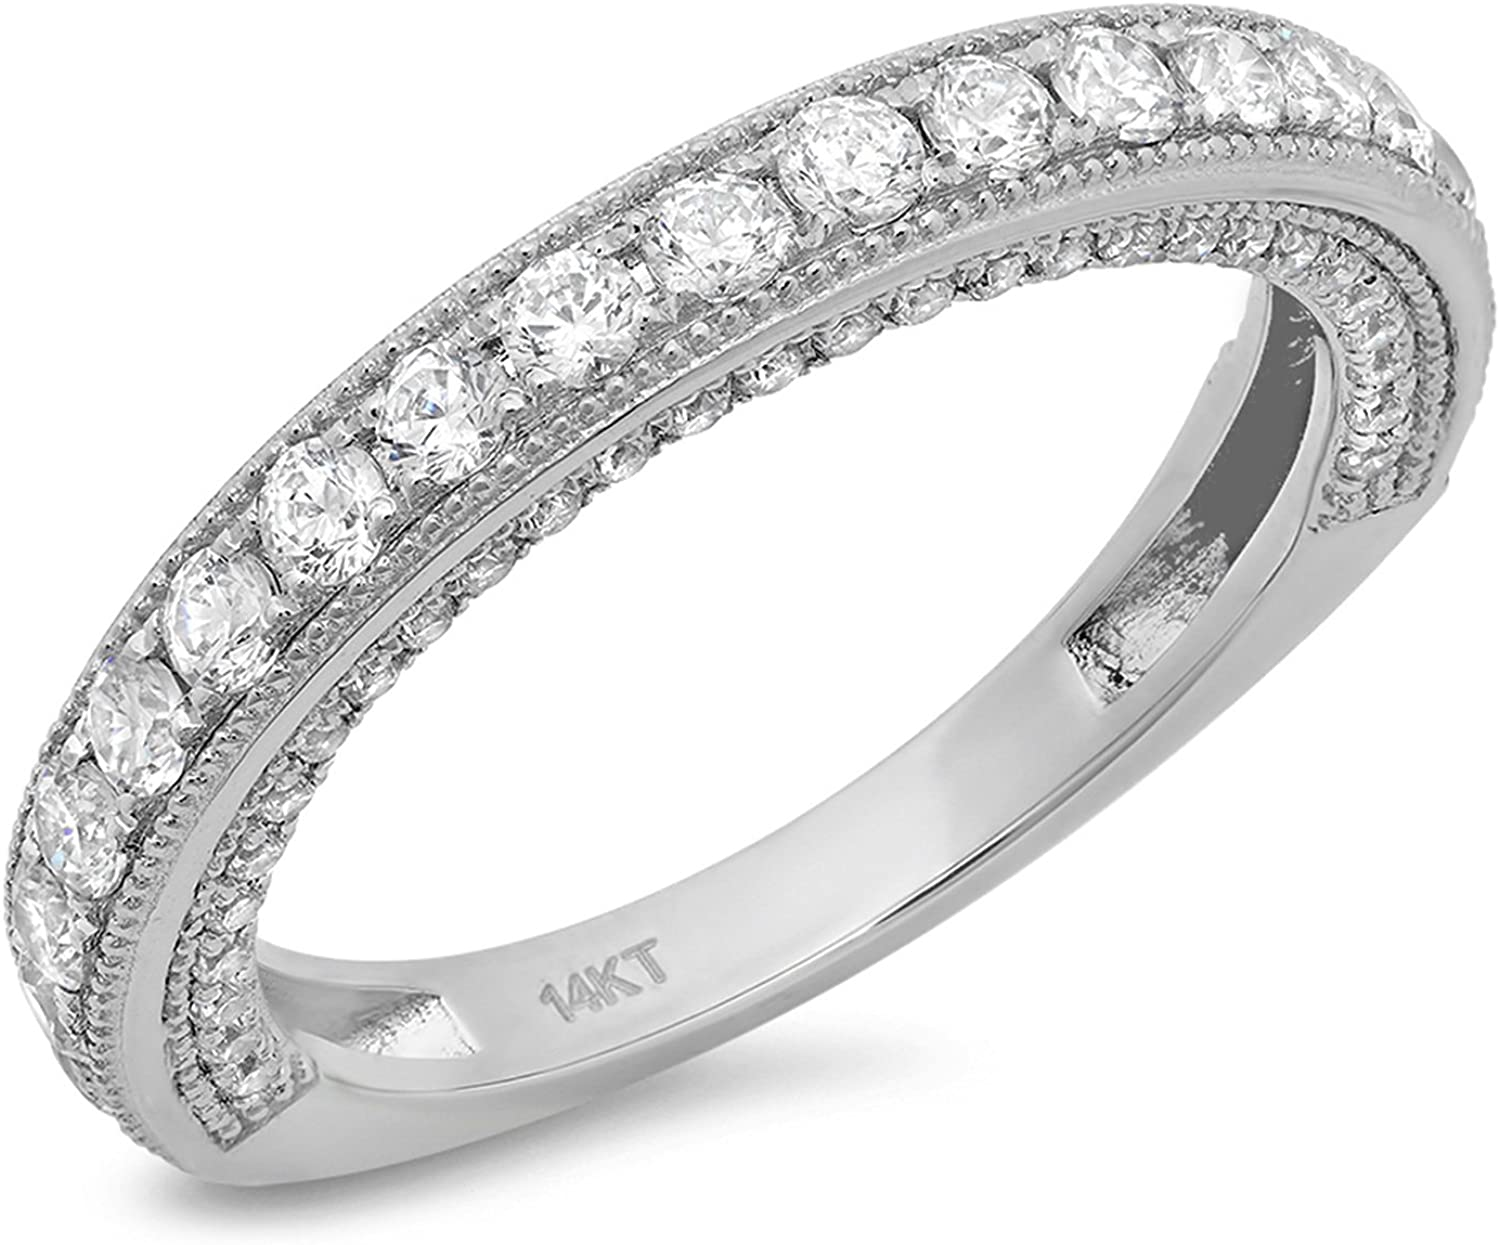 Clara Pucci 1.10 CT Round Cut Pave Set Designer Classic Eternity Band Ring Solid 14k White Gold